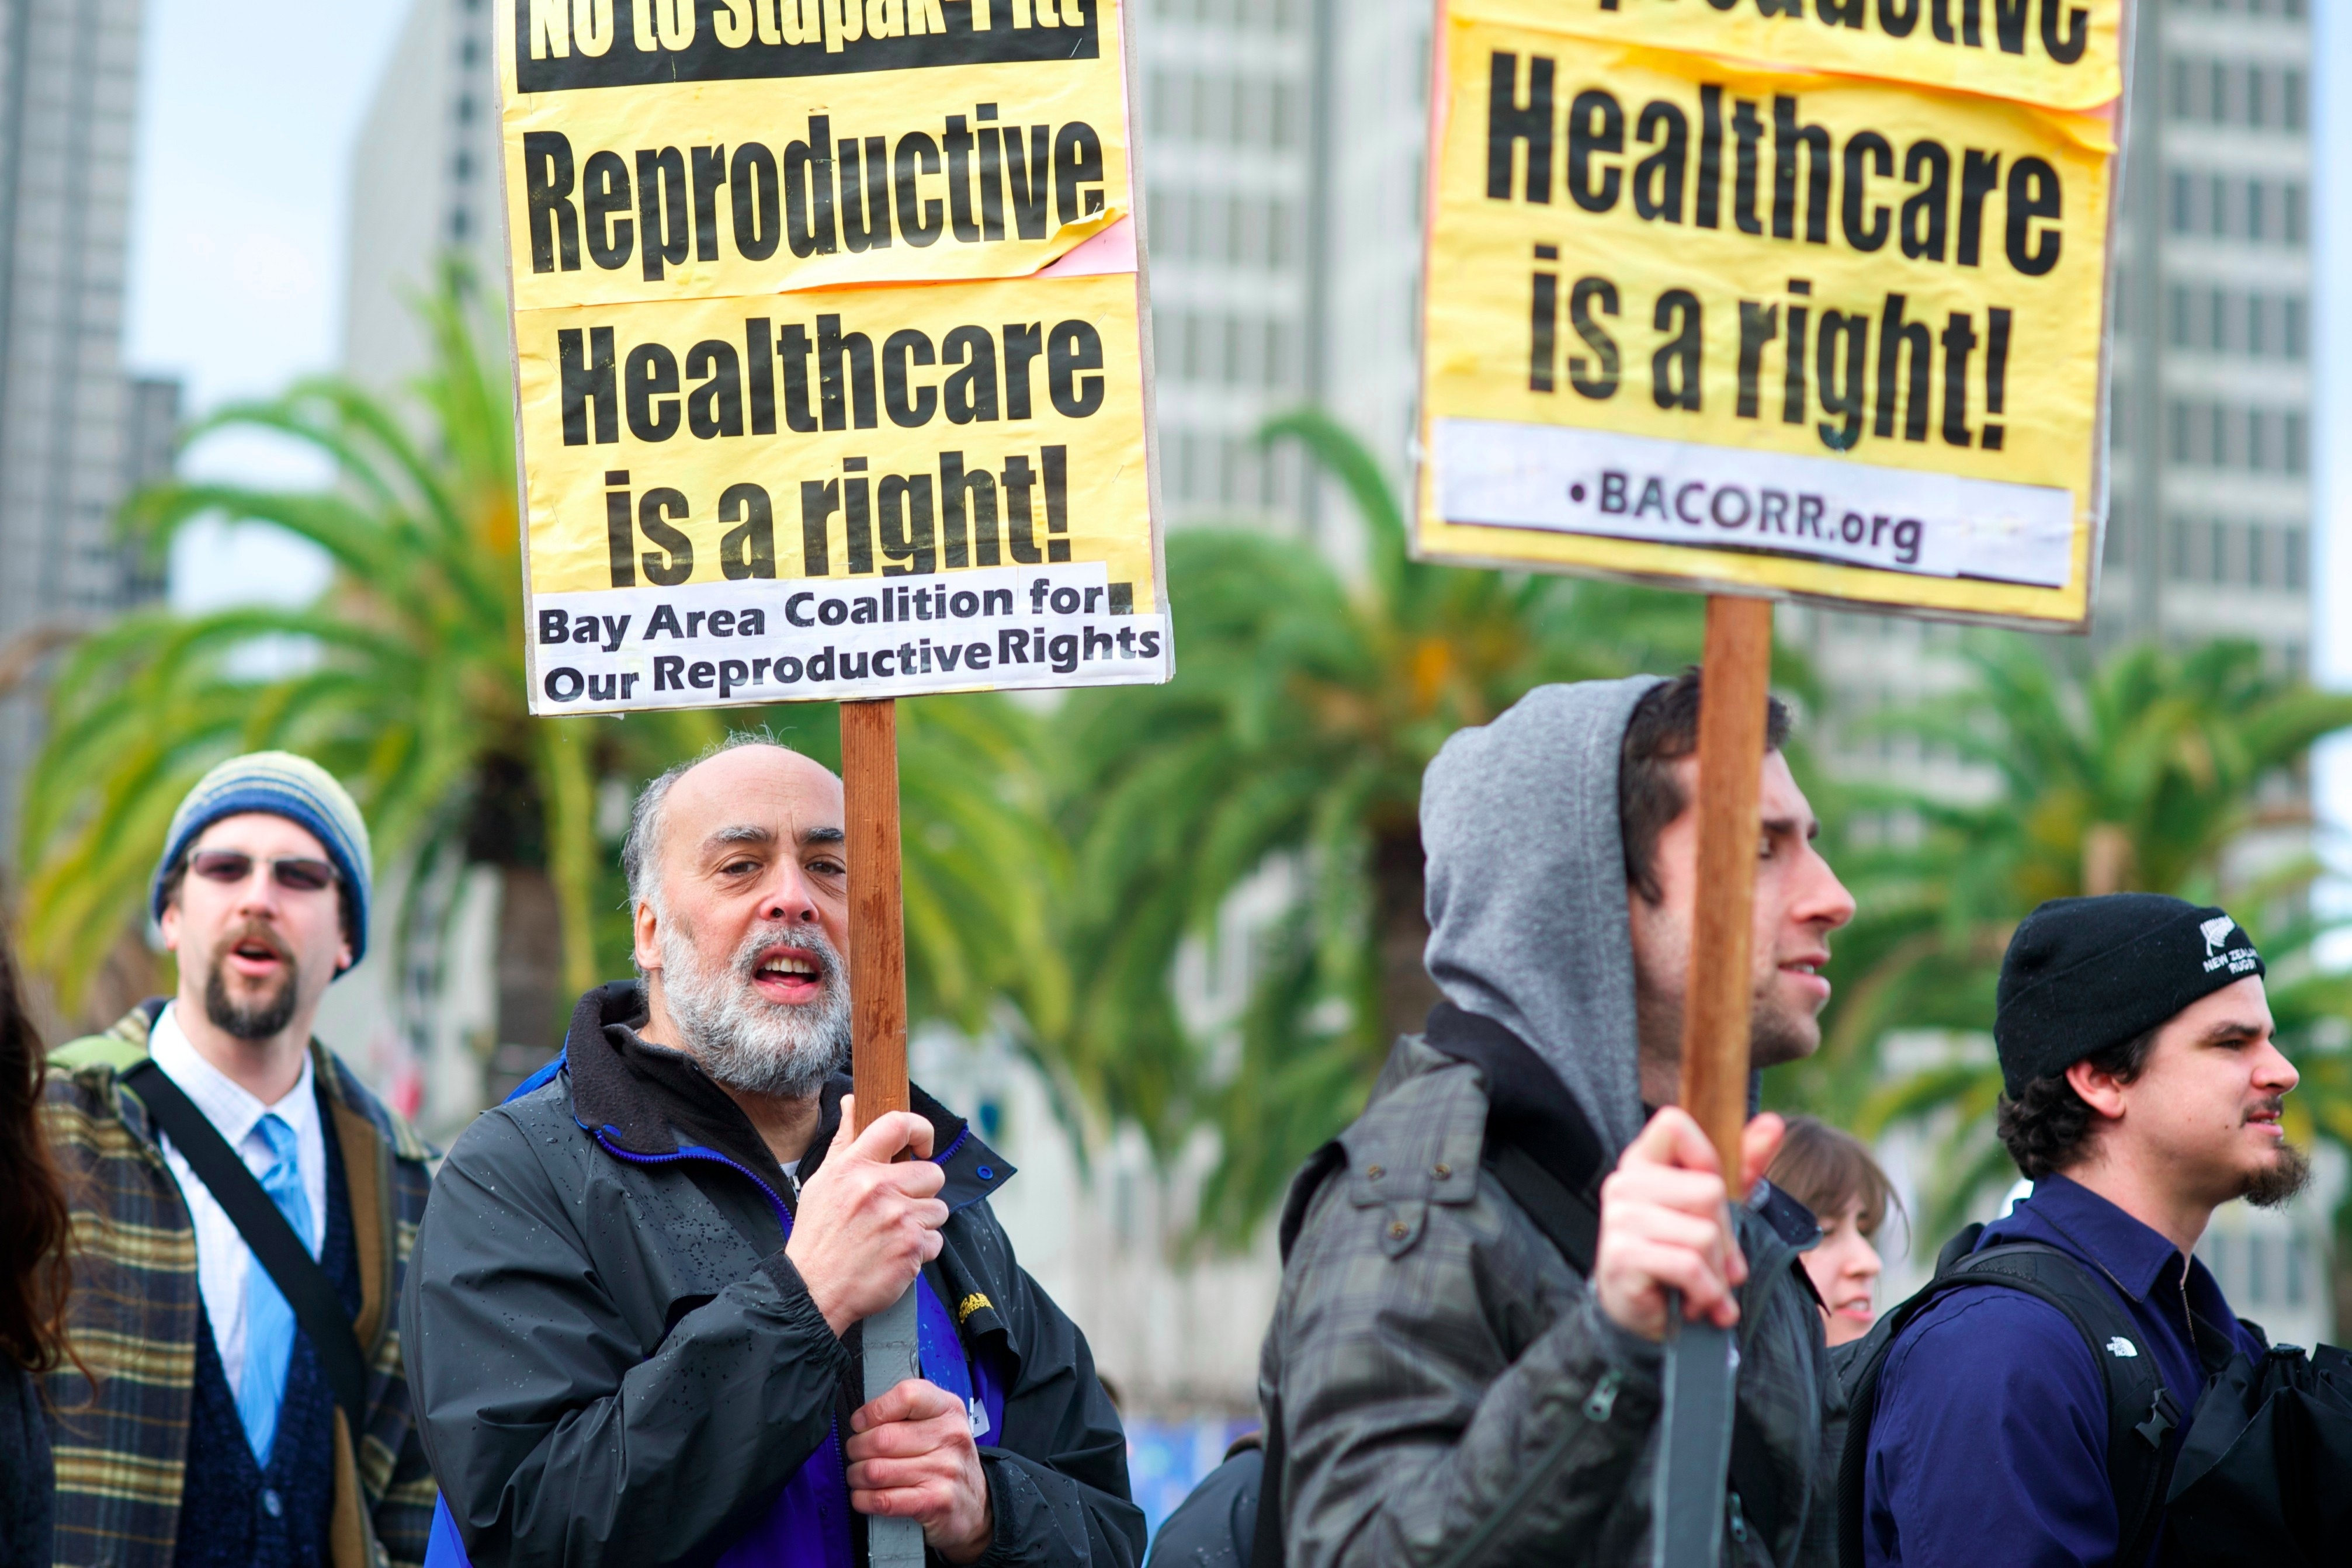 an argument in favor of the right of women to have an abortion in the united states of america Biological continuity argument and the right to life  the reality, though, is that  many women will not make such a decision and instead hope.